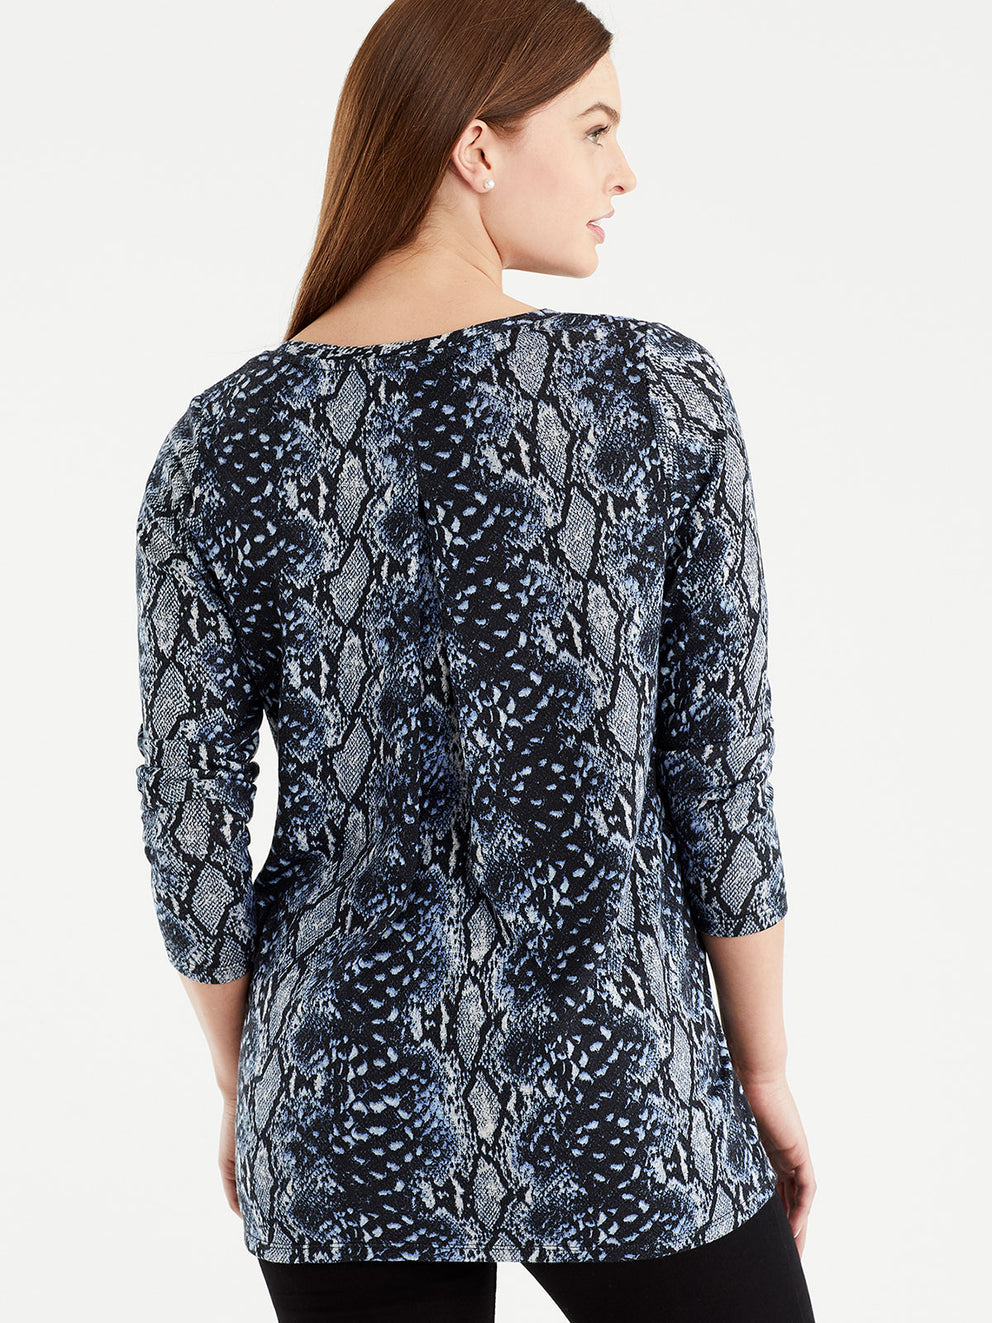 The Jones New York Snake Print V-Neck Tunic in color Blue Snake Print - Image Position 3